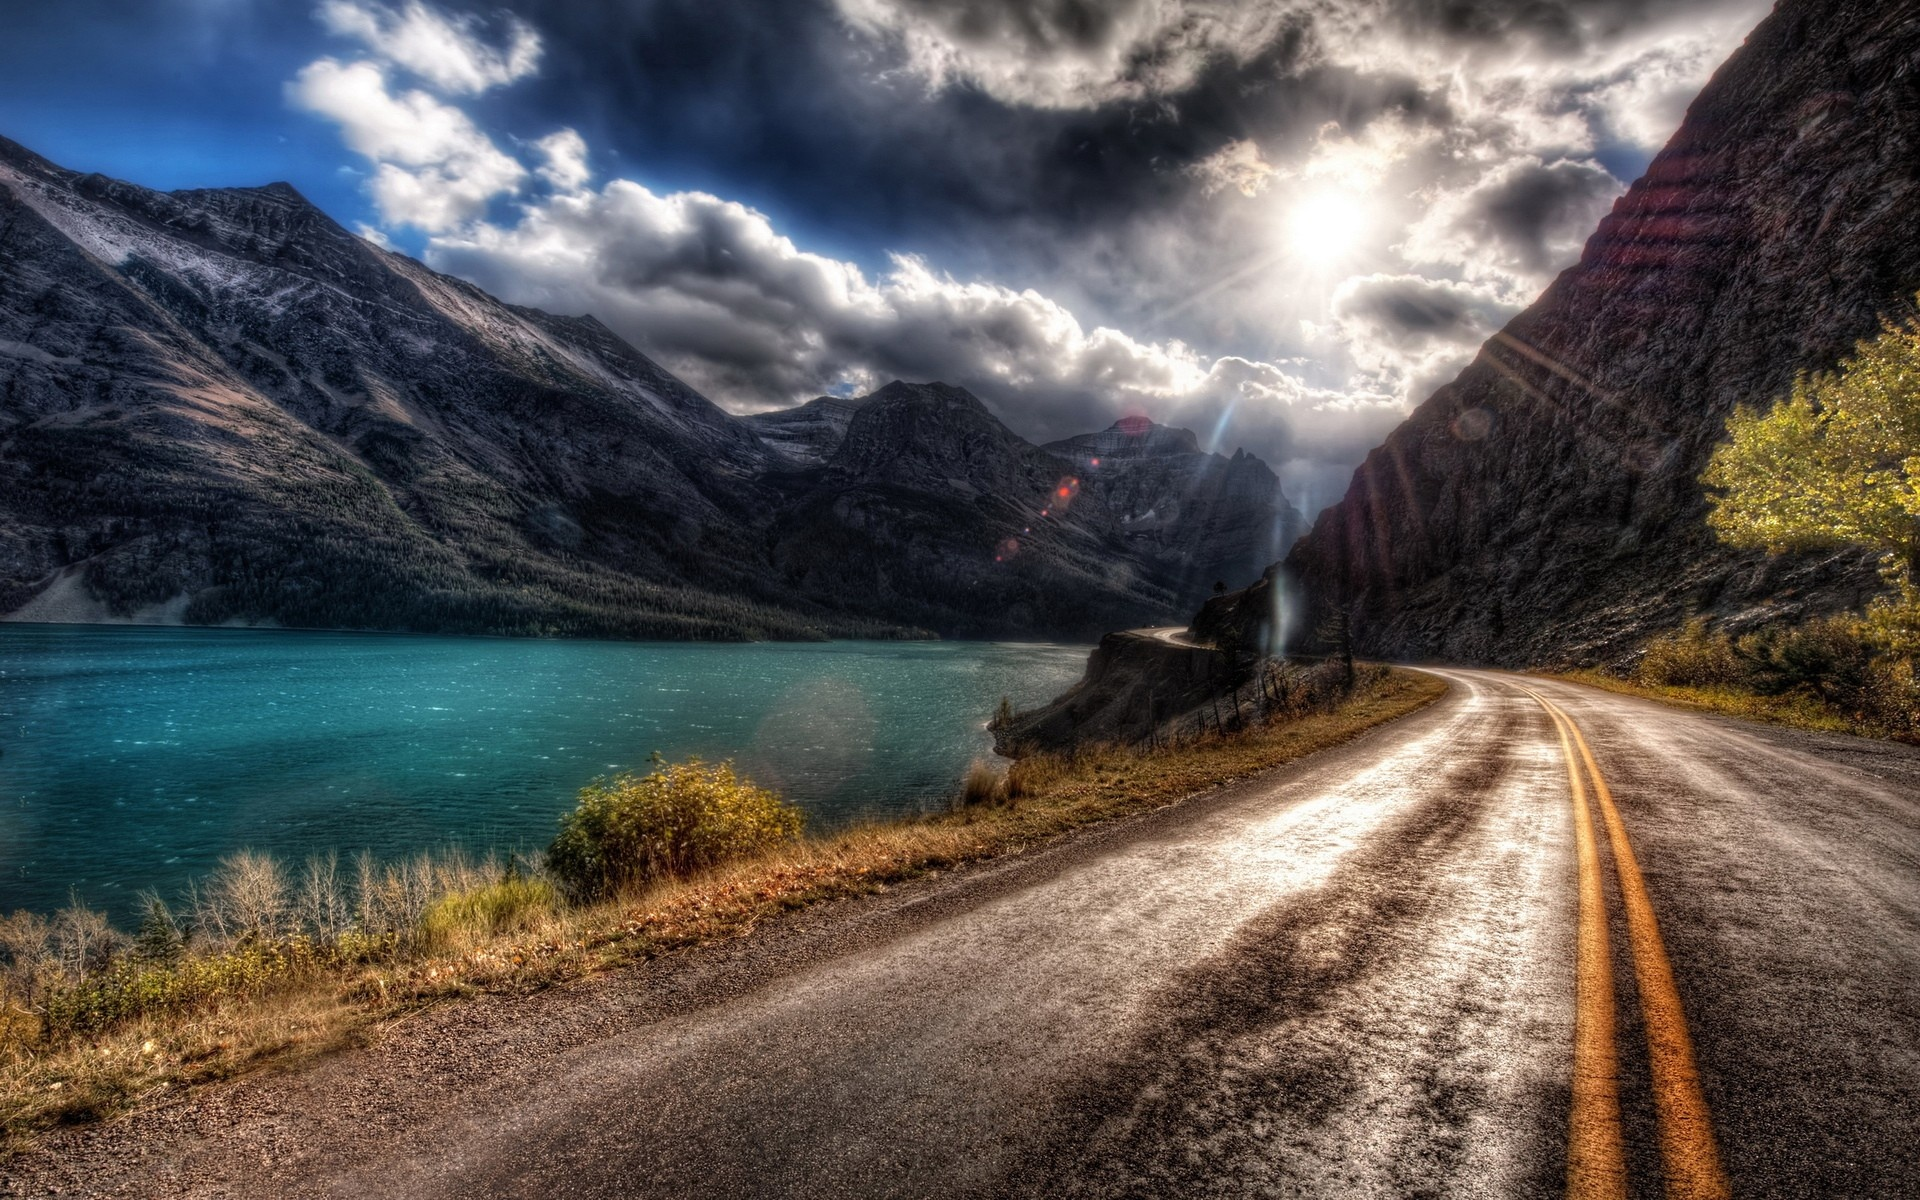 Mountain Road Hd Wallpaper 1920x1200 35026